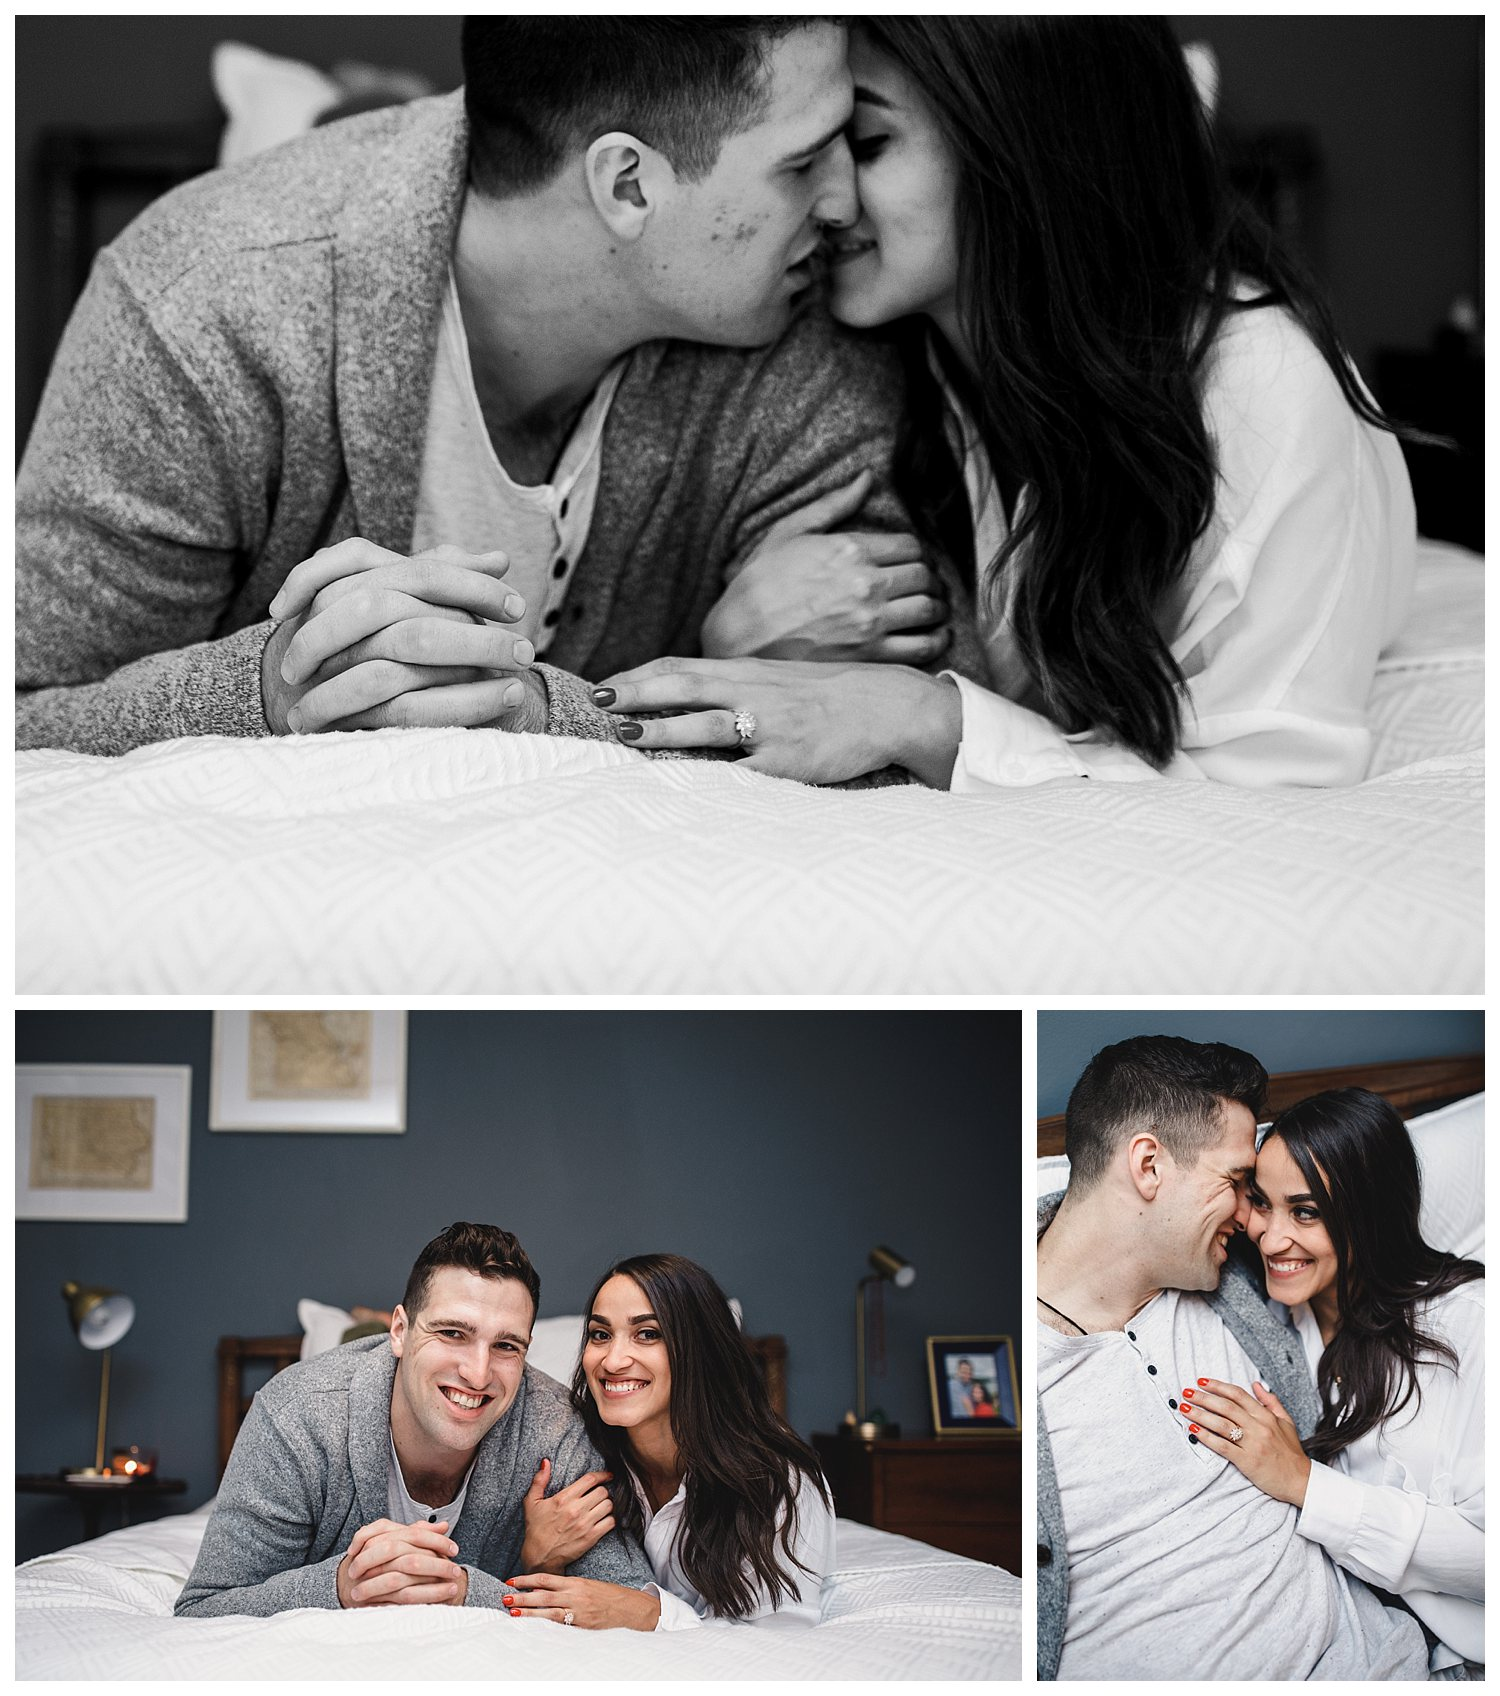 Kansas_City_Wedding_Photographer_Engagement_Kelsey_Diane_Photography_Midwest_Traveling_In_home_engagement_Session_Cassie_Austin_Parkville_Missouri_0882.jpg